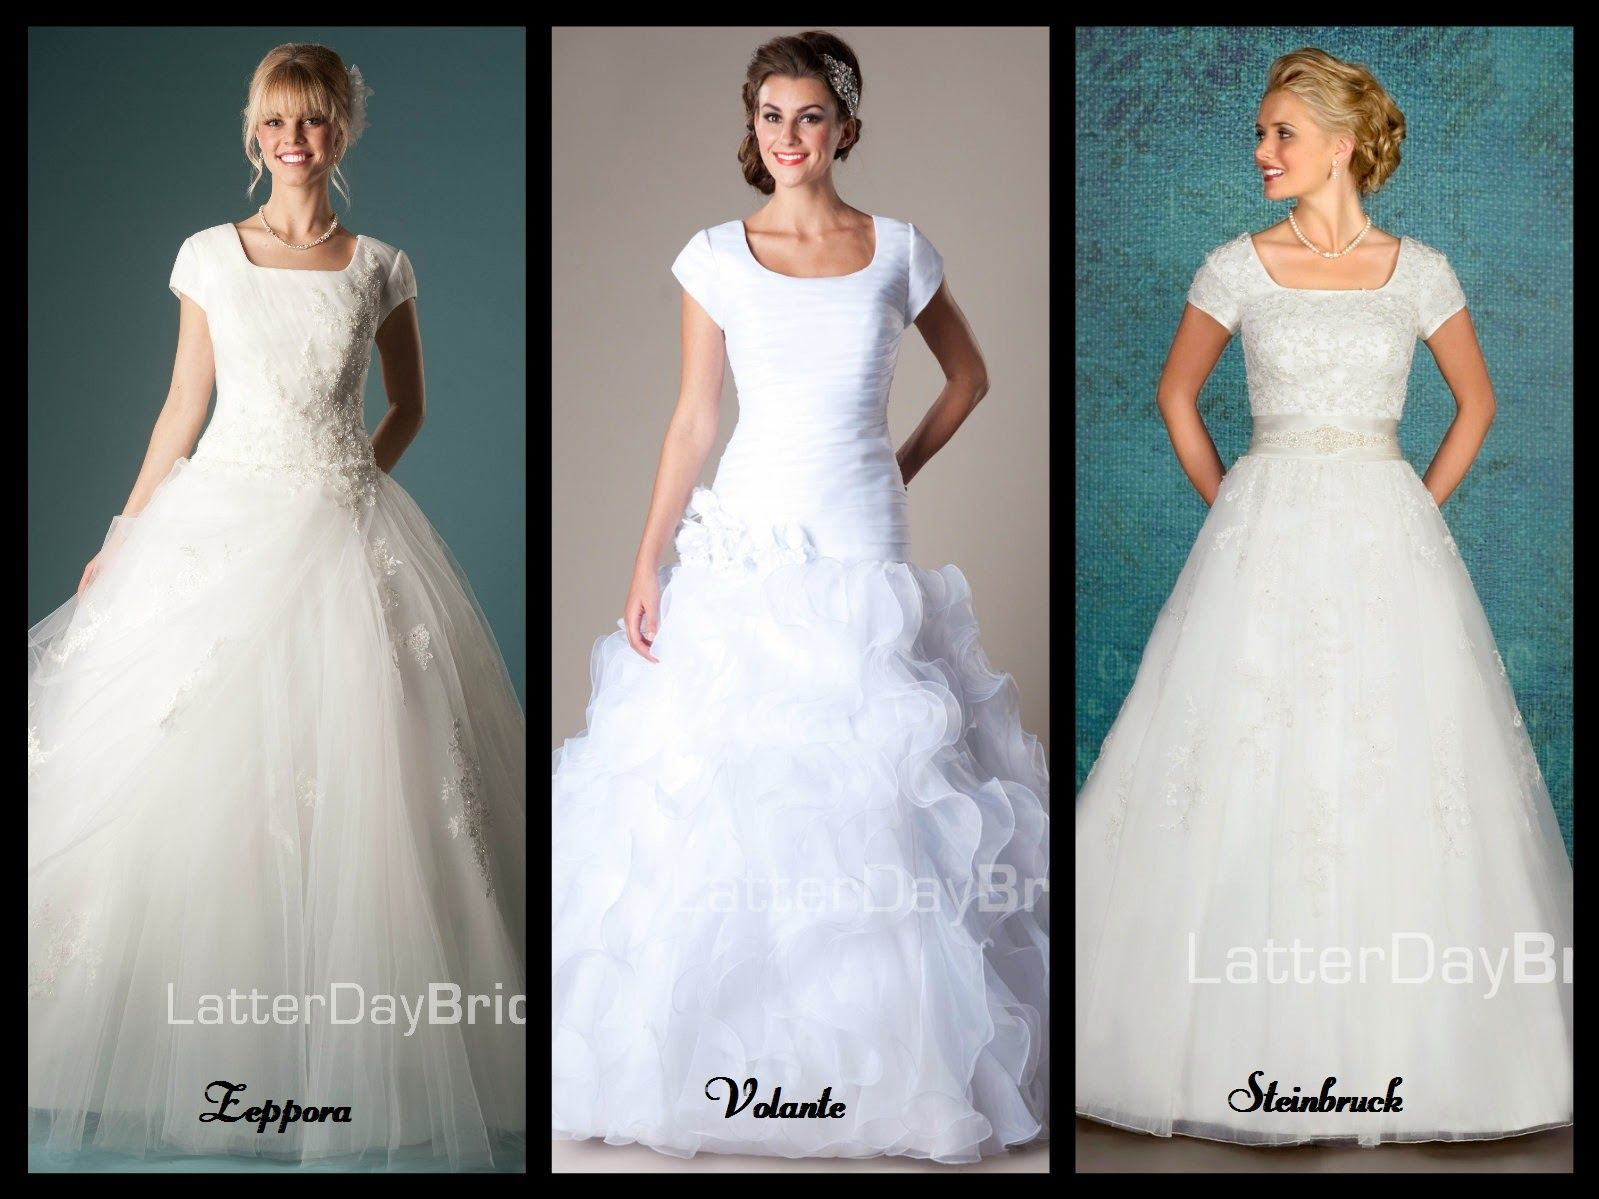 Jessa s wedding dress cost wedding ideas for Jessa duggar wedding dress